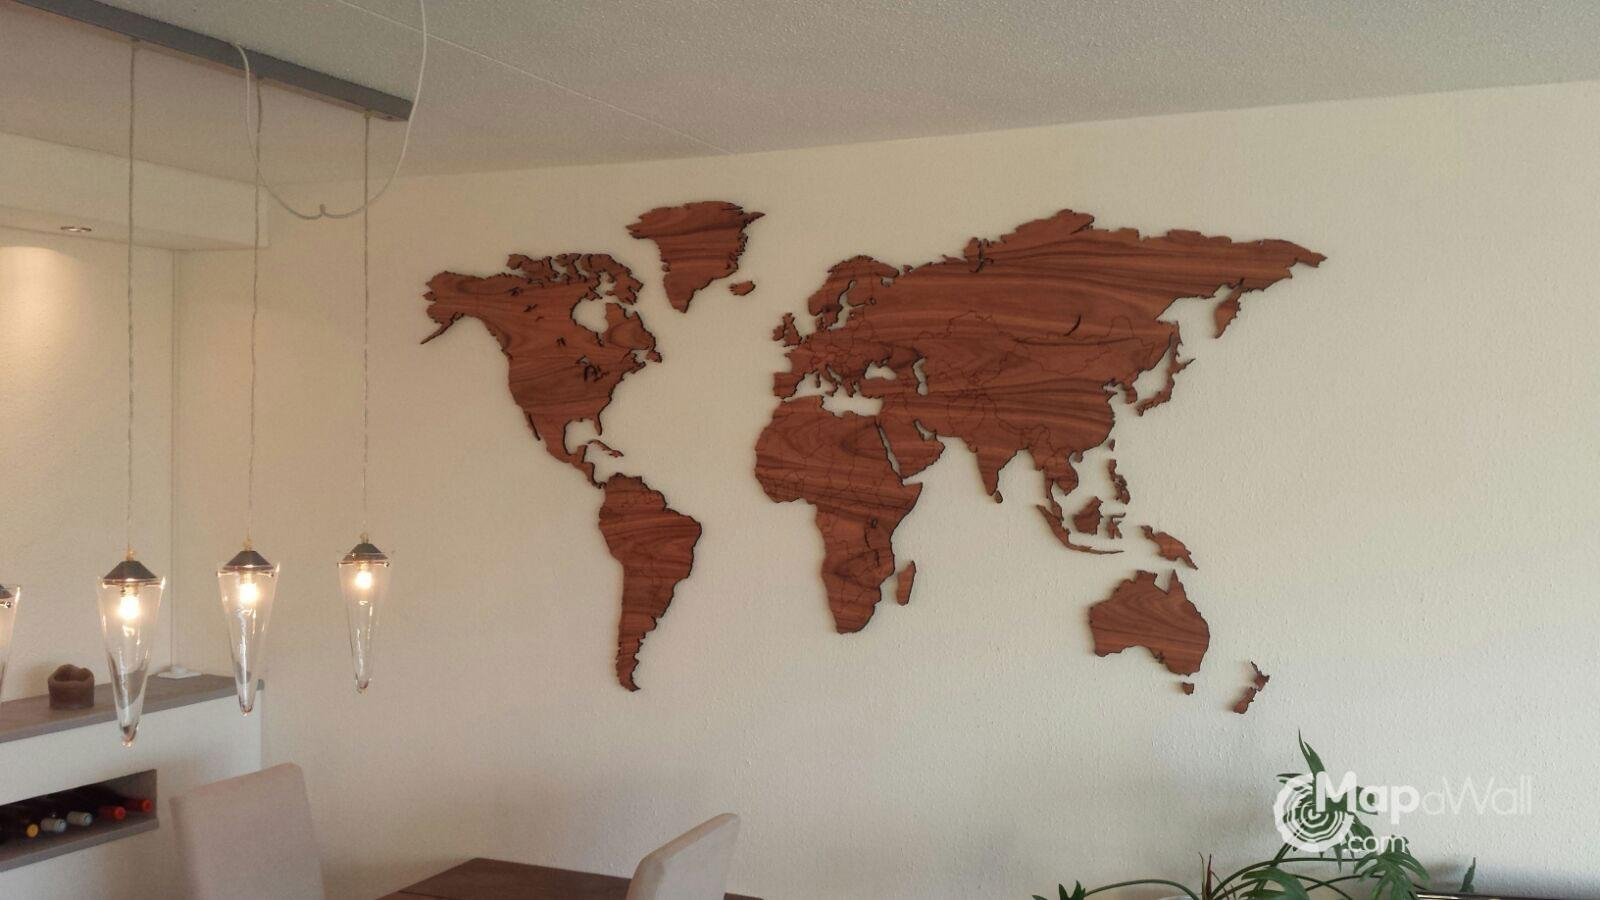 World Map Palisander – Mapawall For Wooden World Map Wall Art (View 7 of 20)